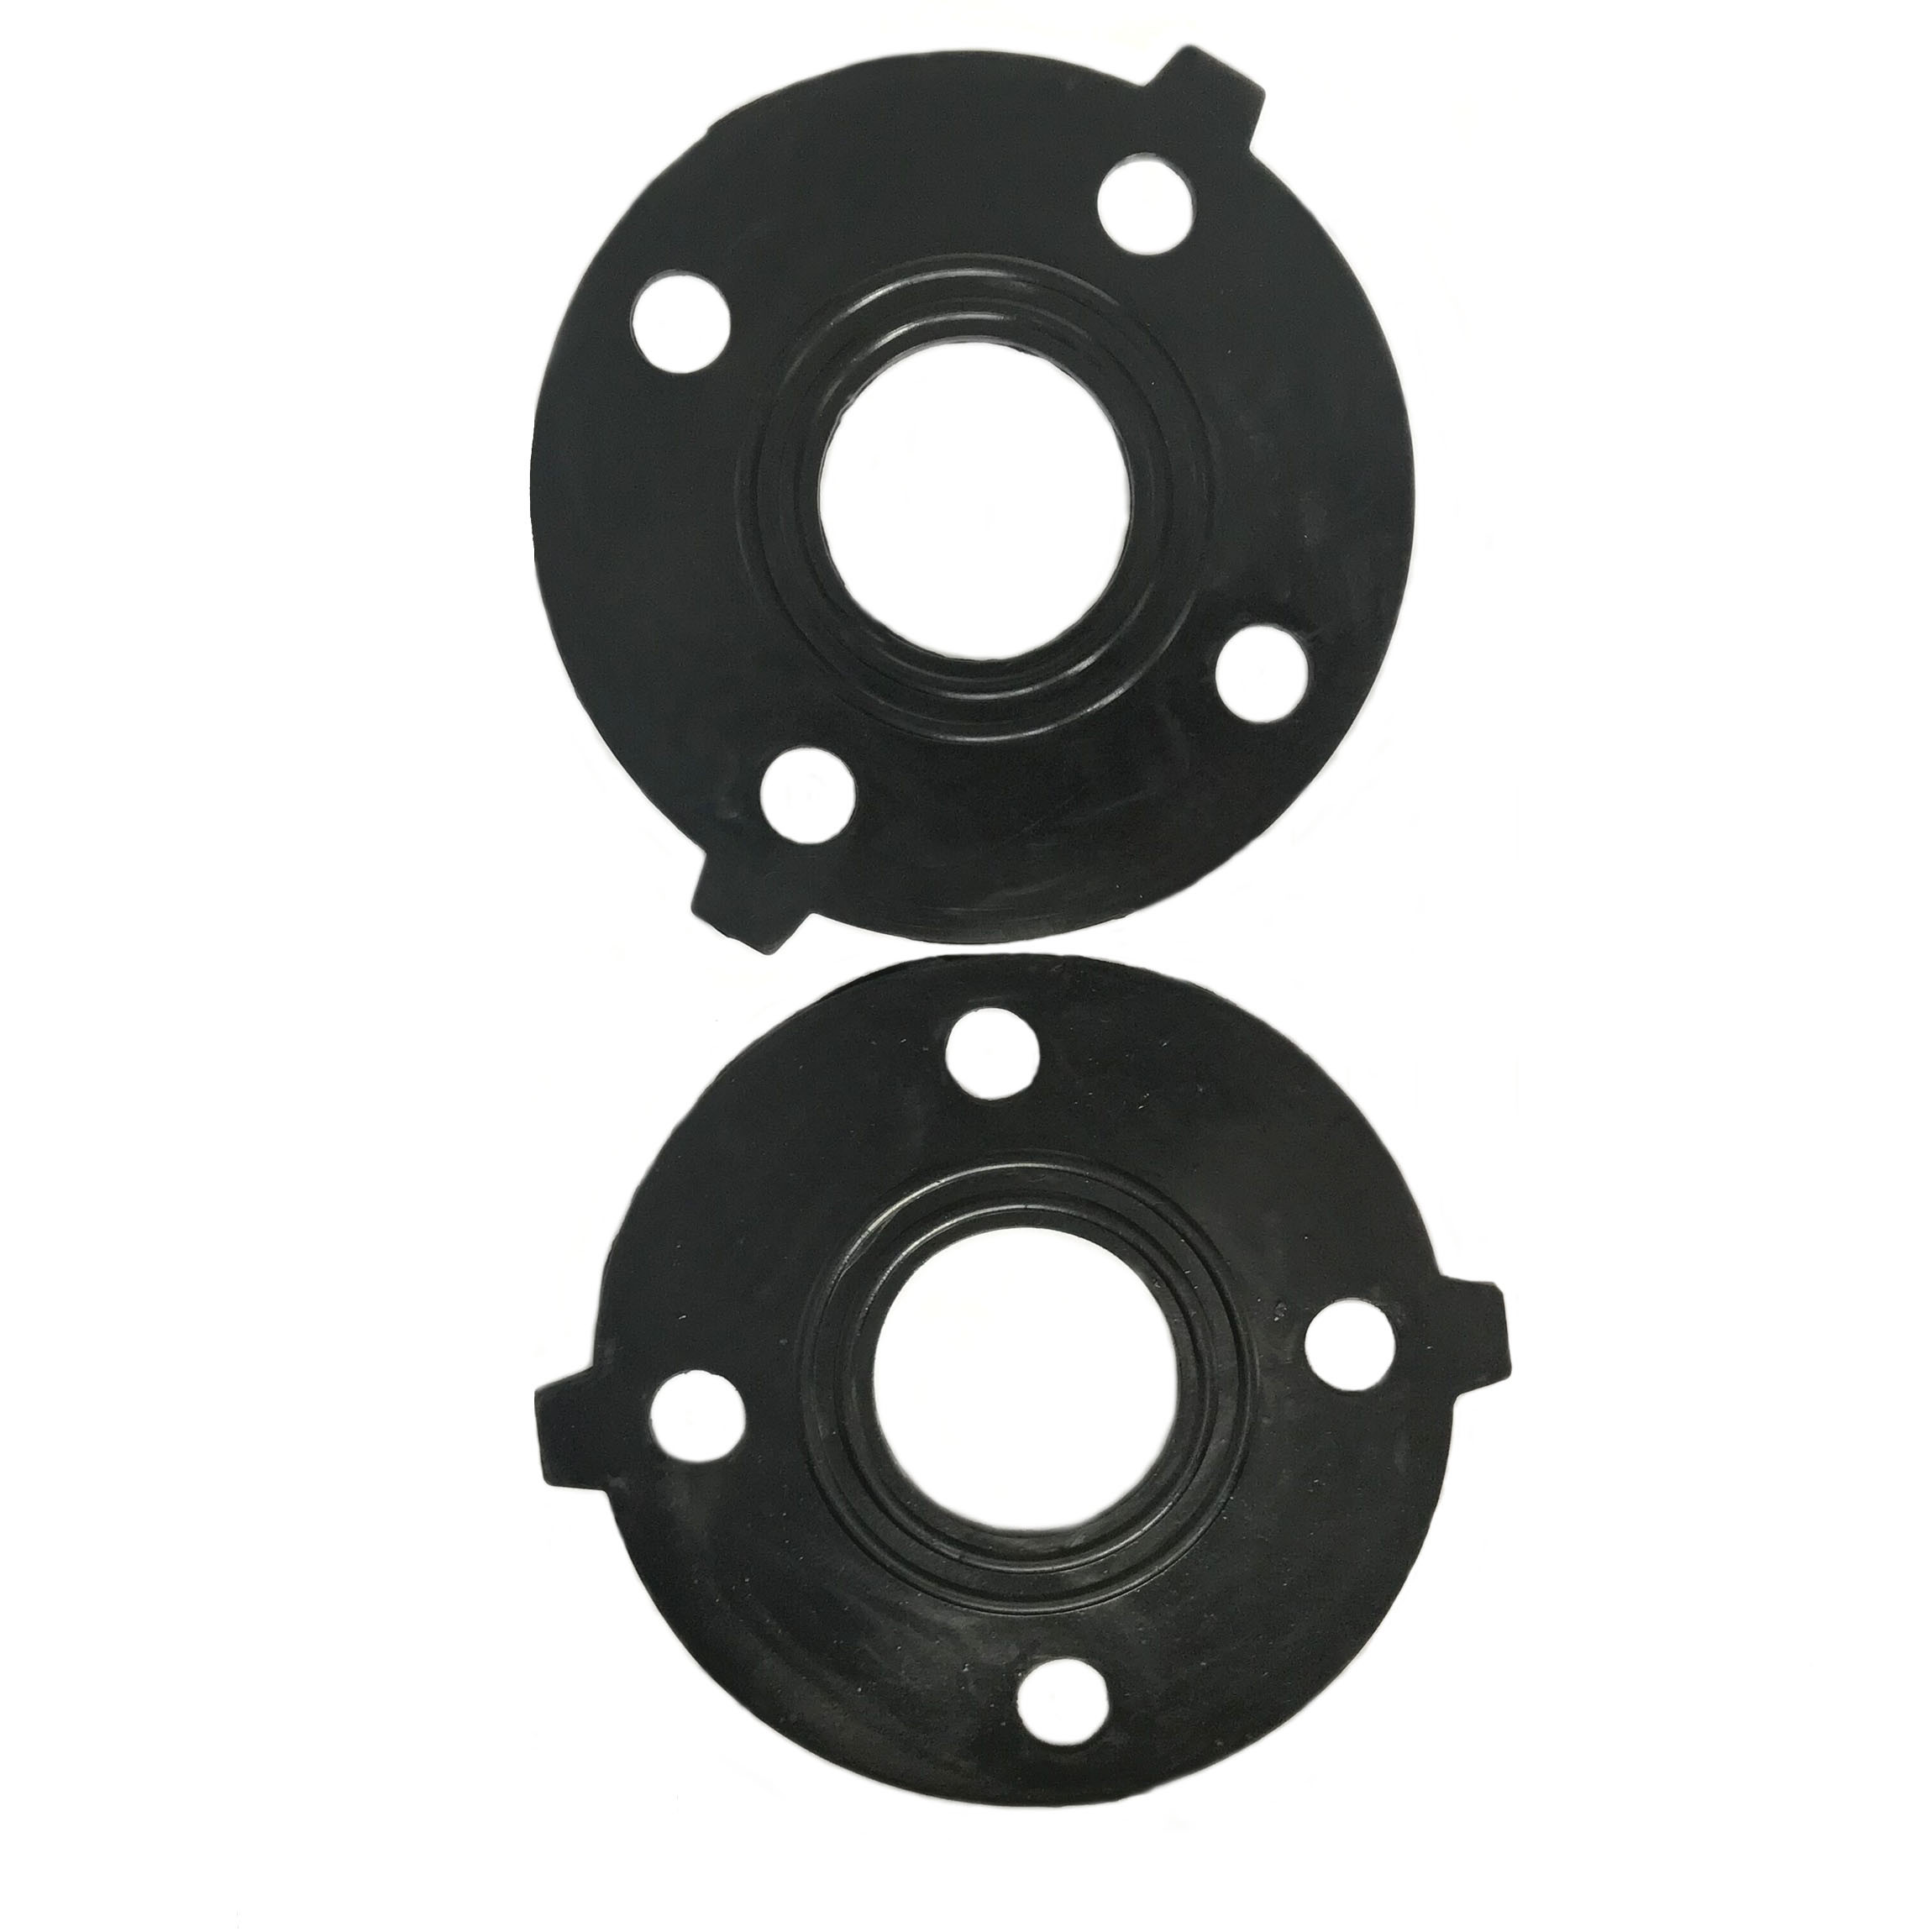 Silicon Rubber Gasket Custom Rubber Products for Machine